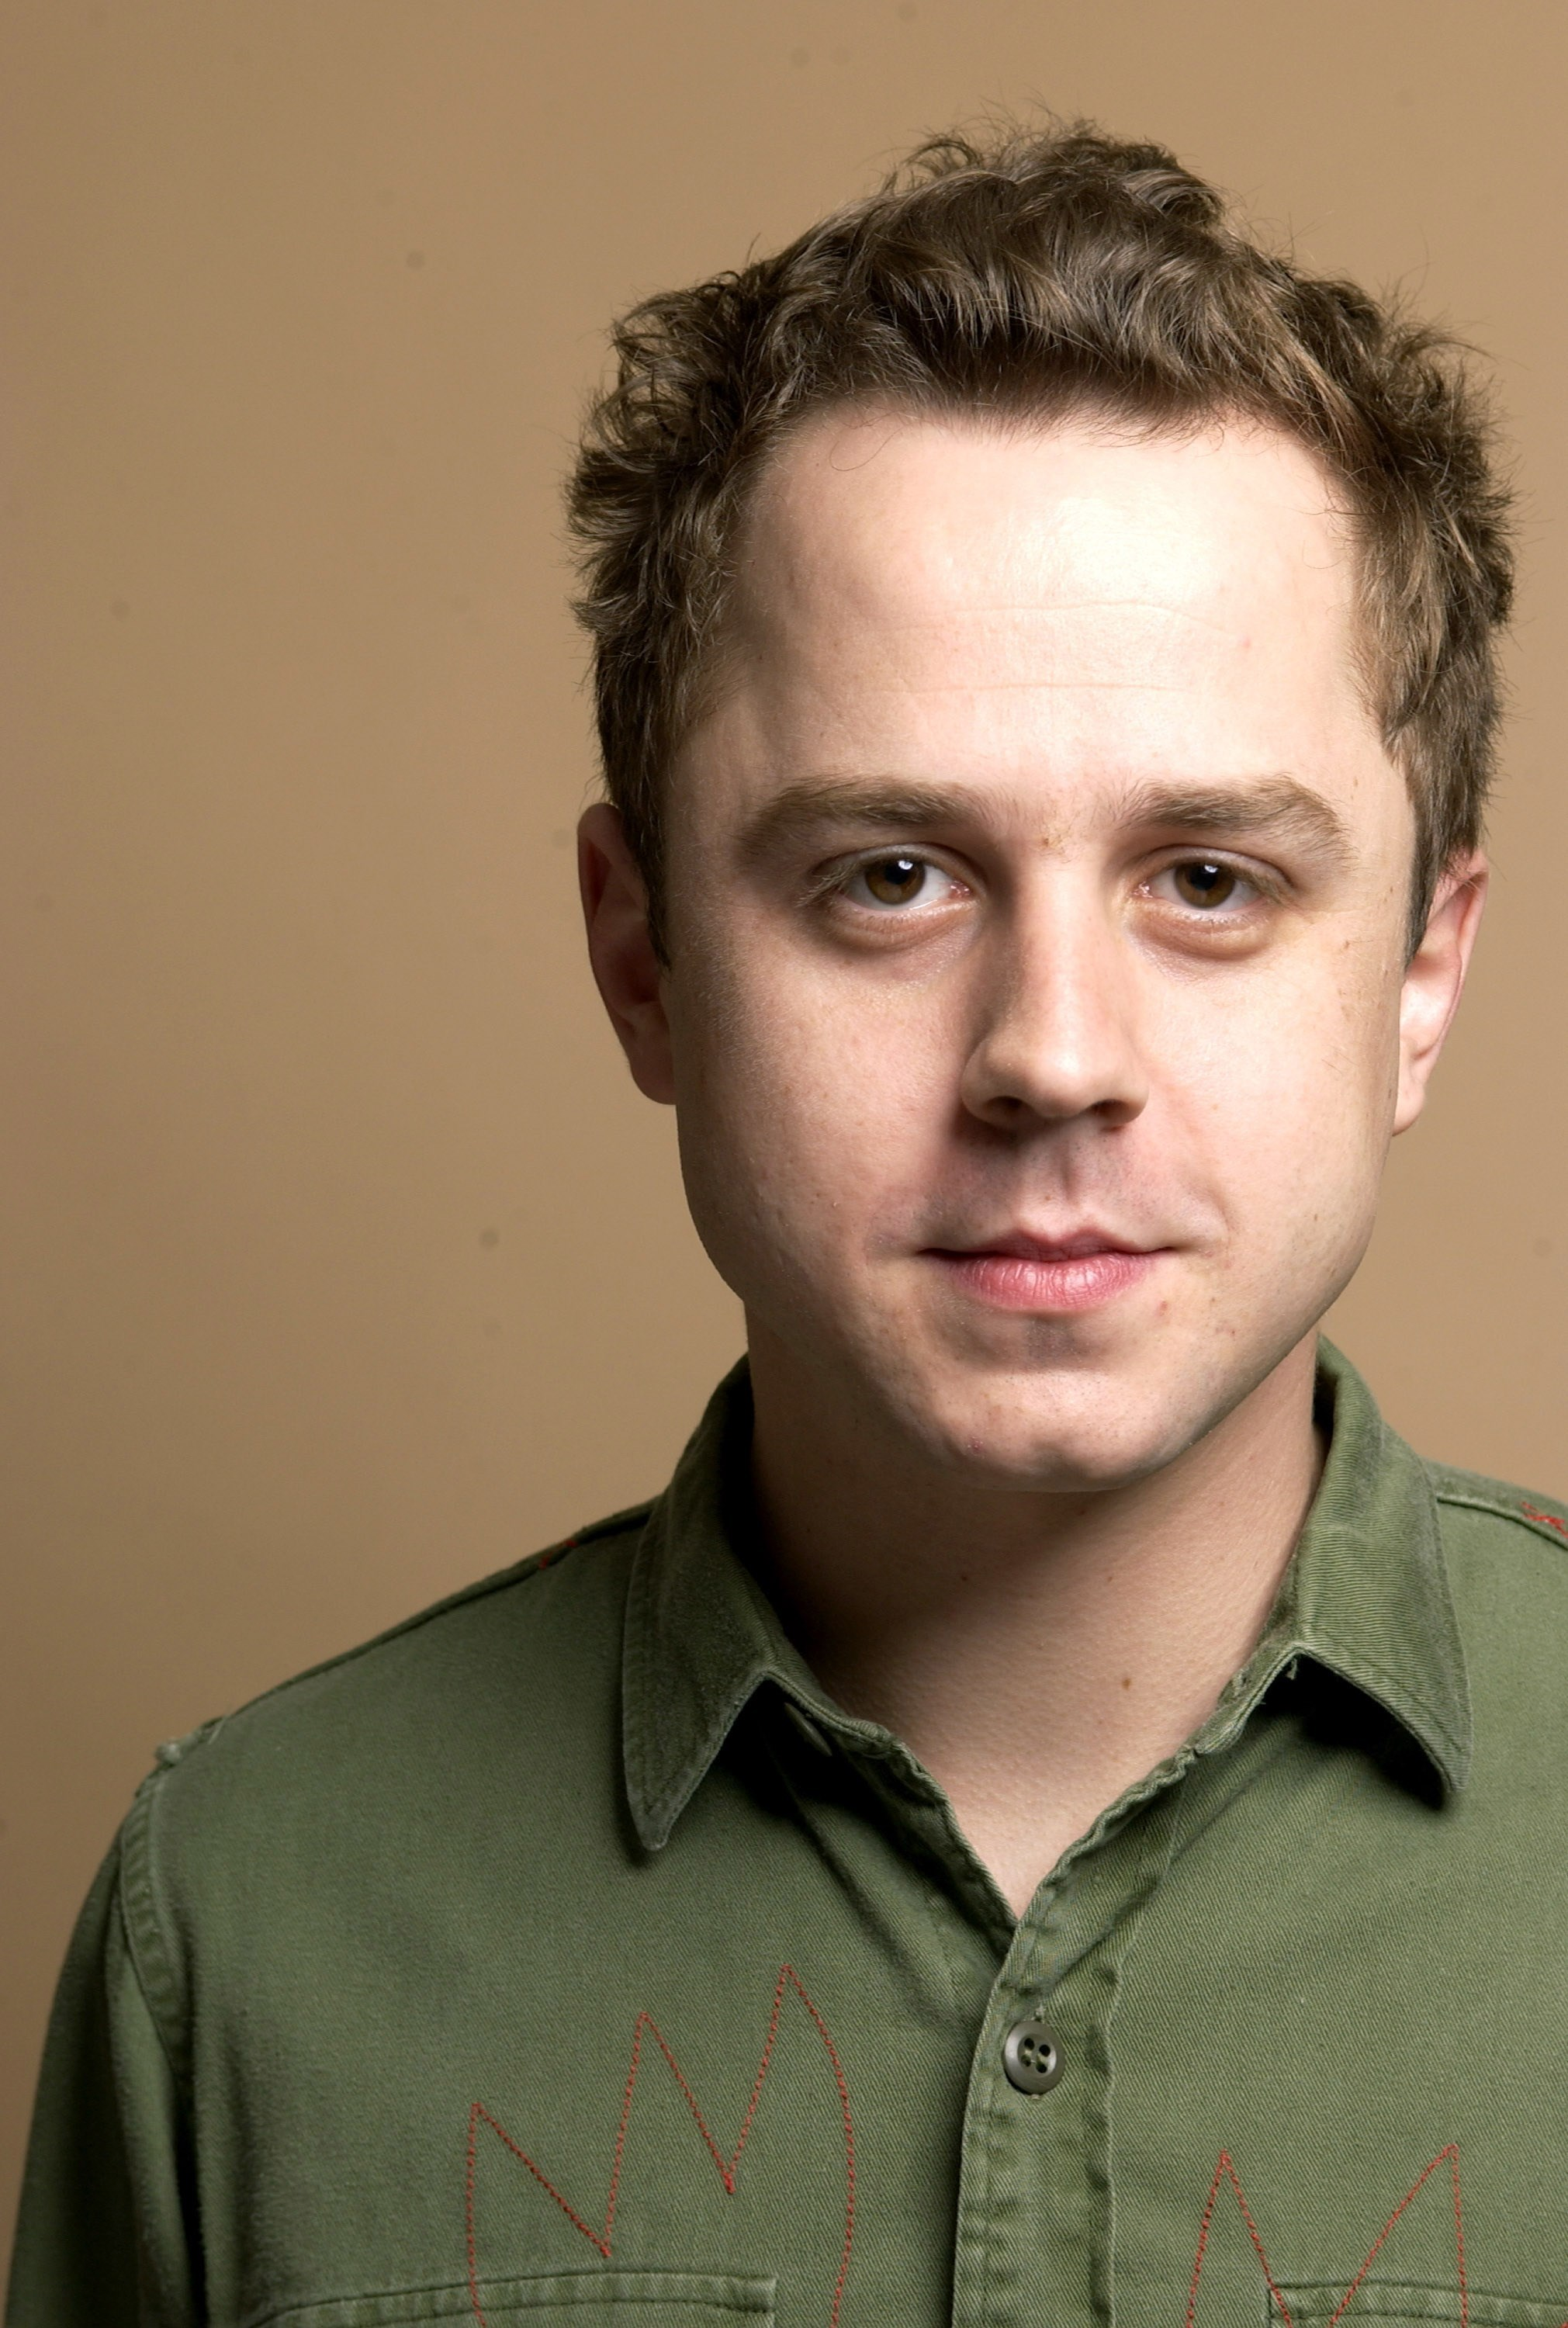 Giovanni Ribisi | Known people - famous people news and ...